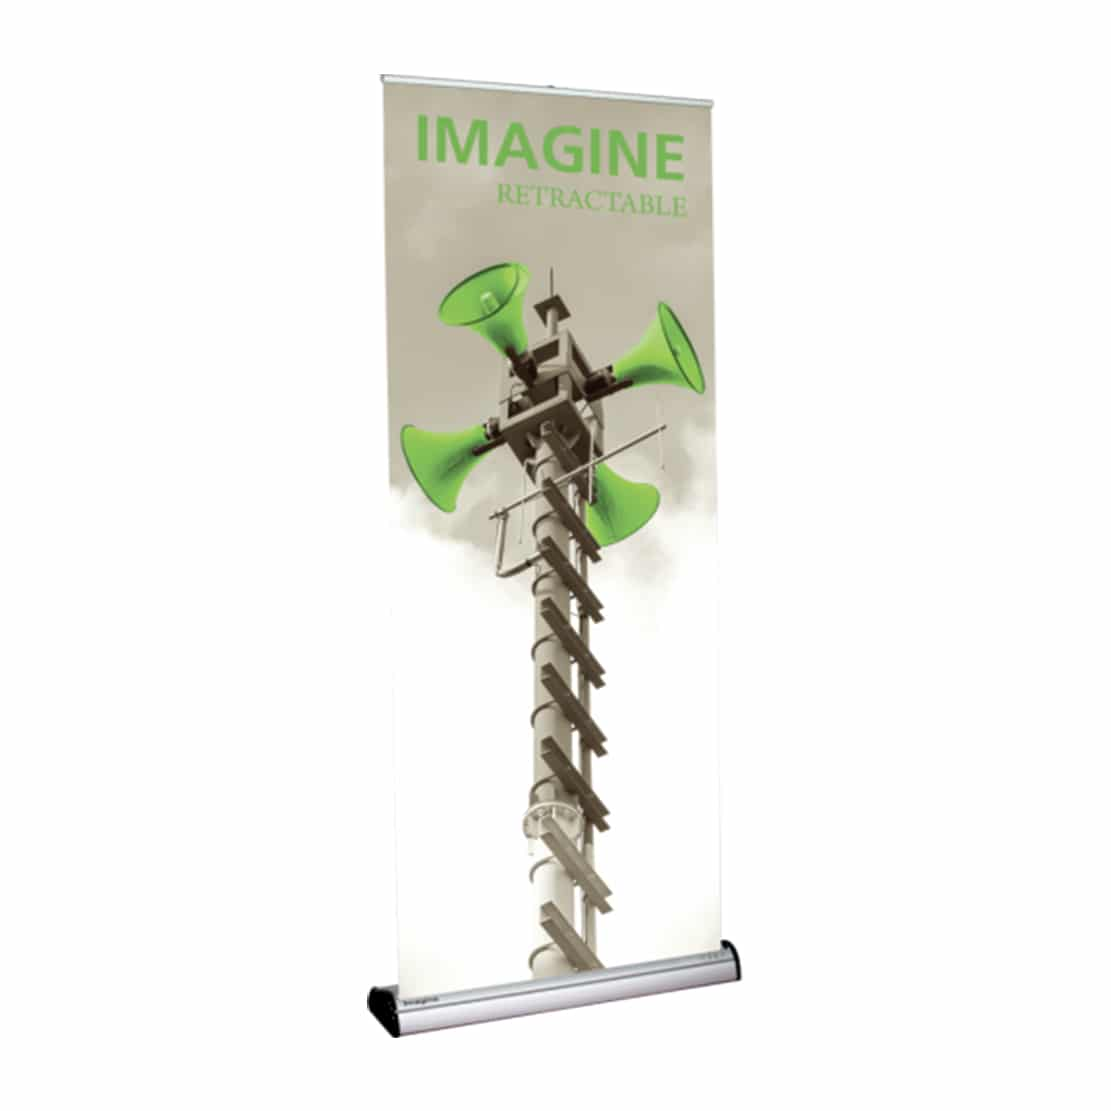 standing imagine banner stand display front view with graphic